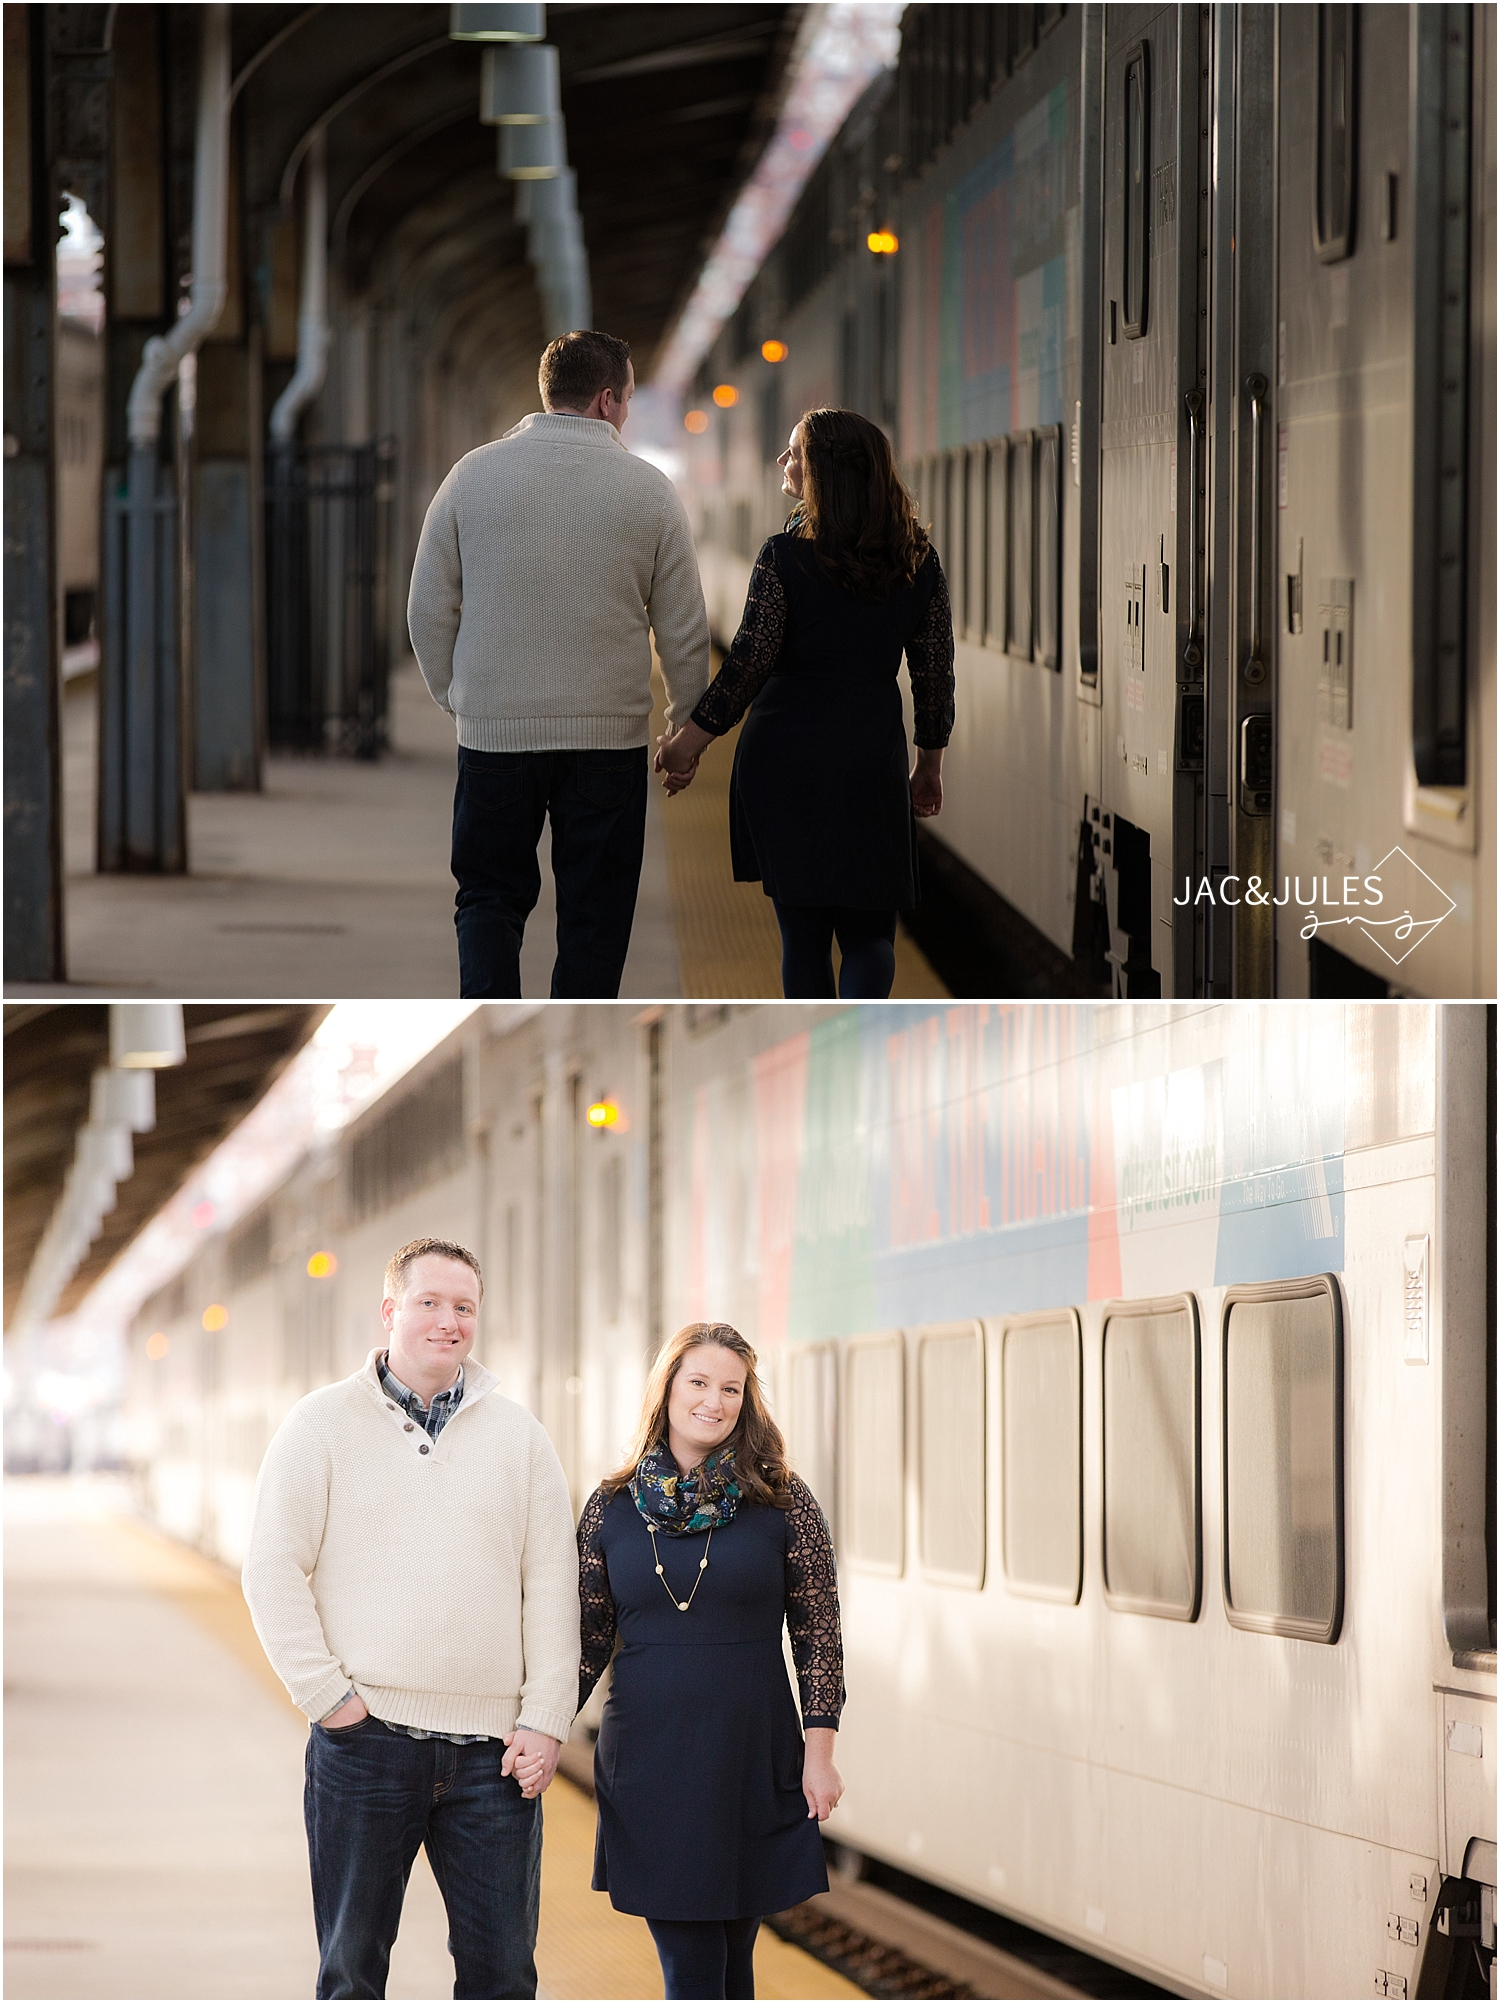 jacnjules photograph engagement photo at Hoboken train station in NJ